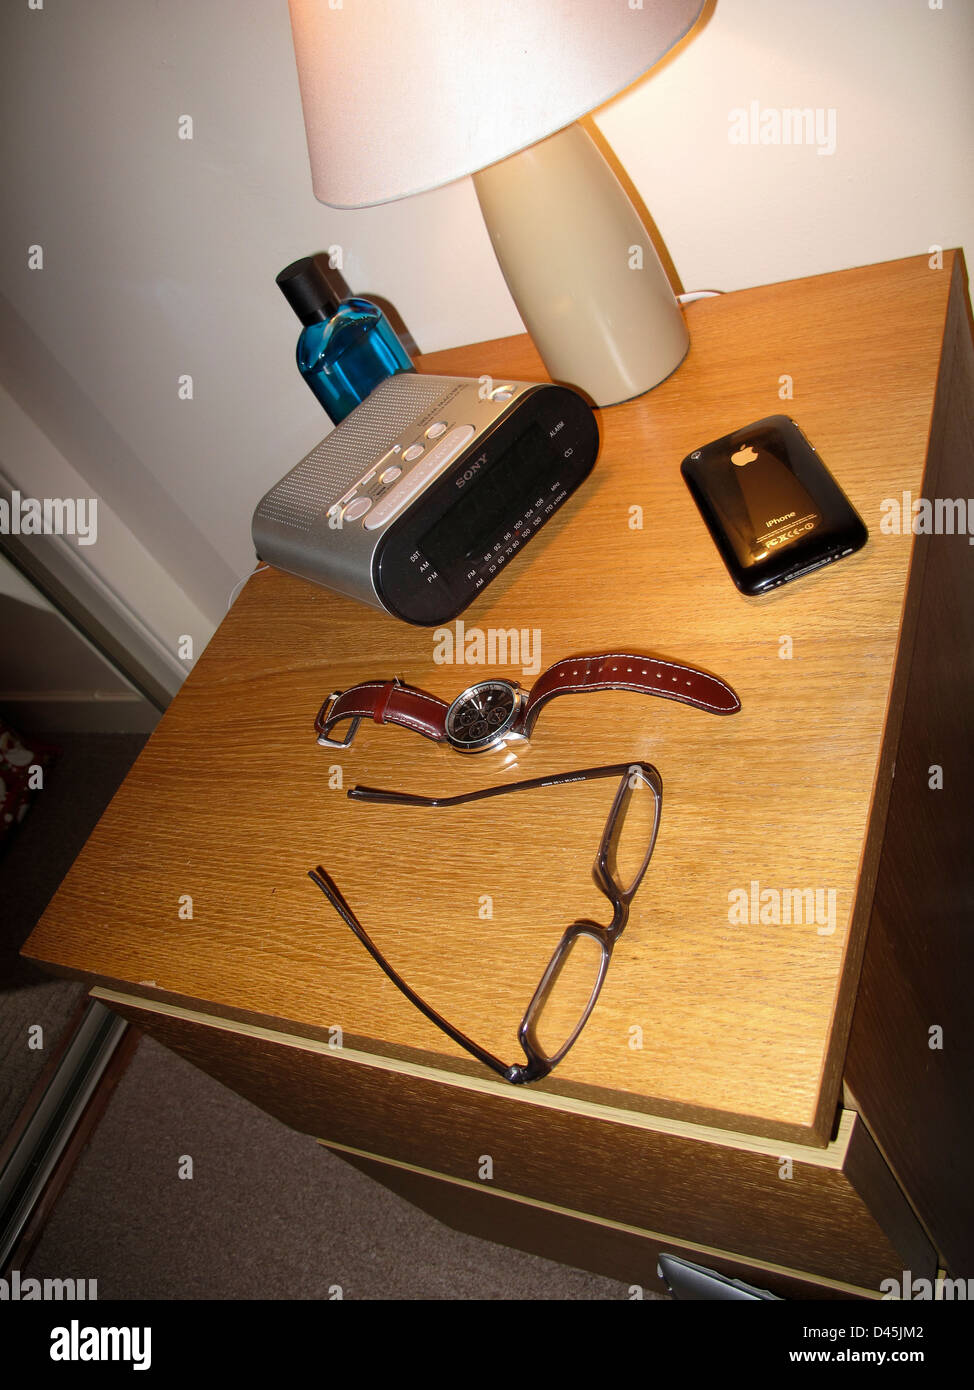 Bedside table with lamp clock radio glasses and iphone stock photo bedside table with lamp clock radio glasses and iphone aloadofball Images